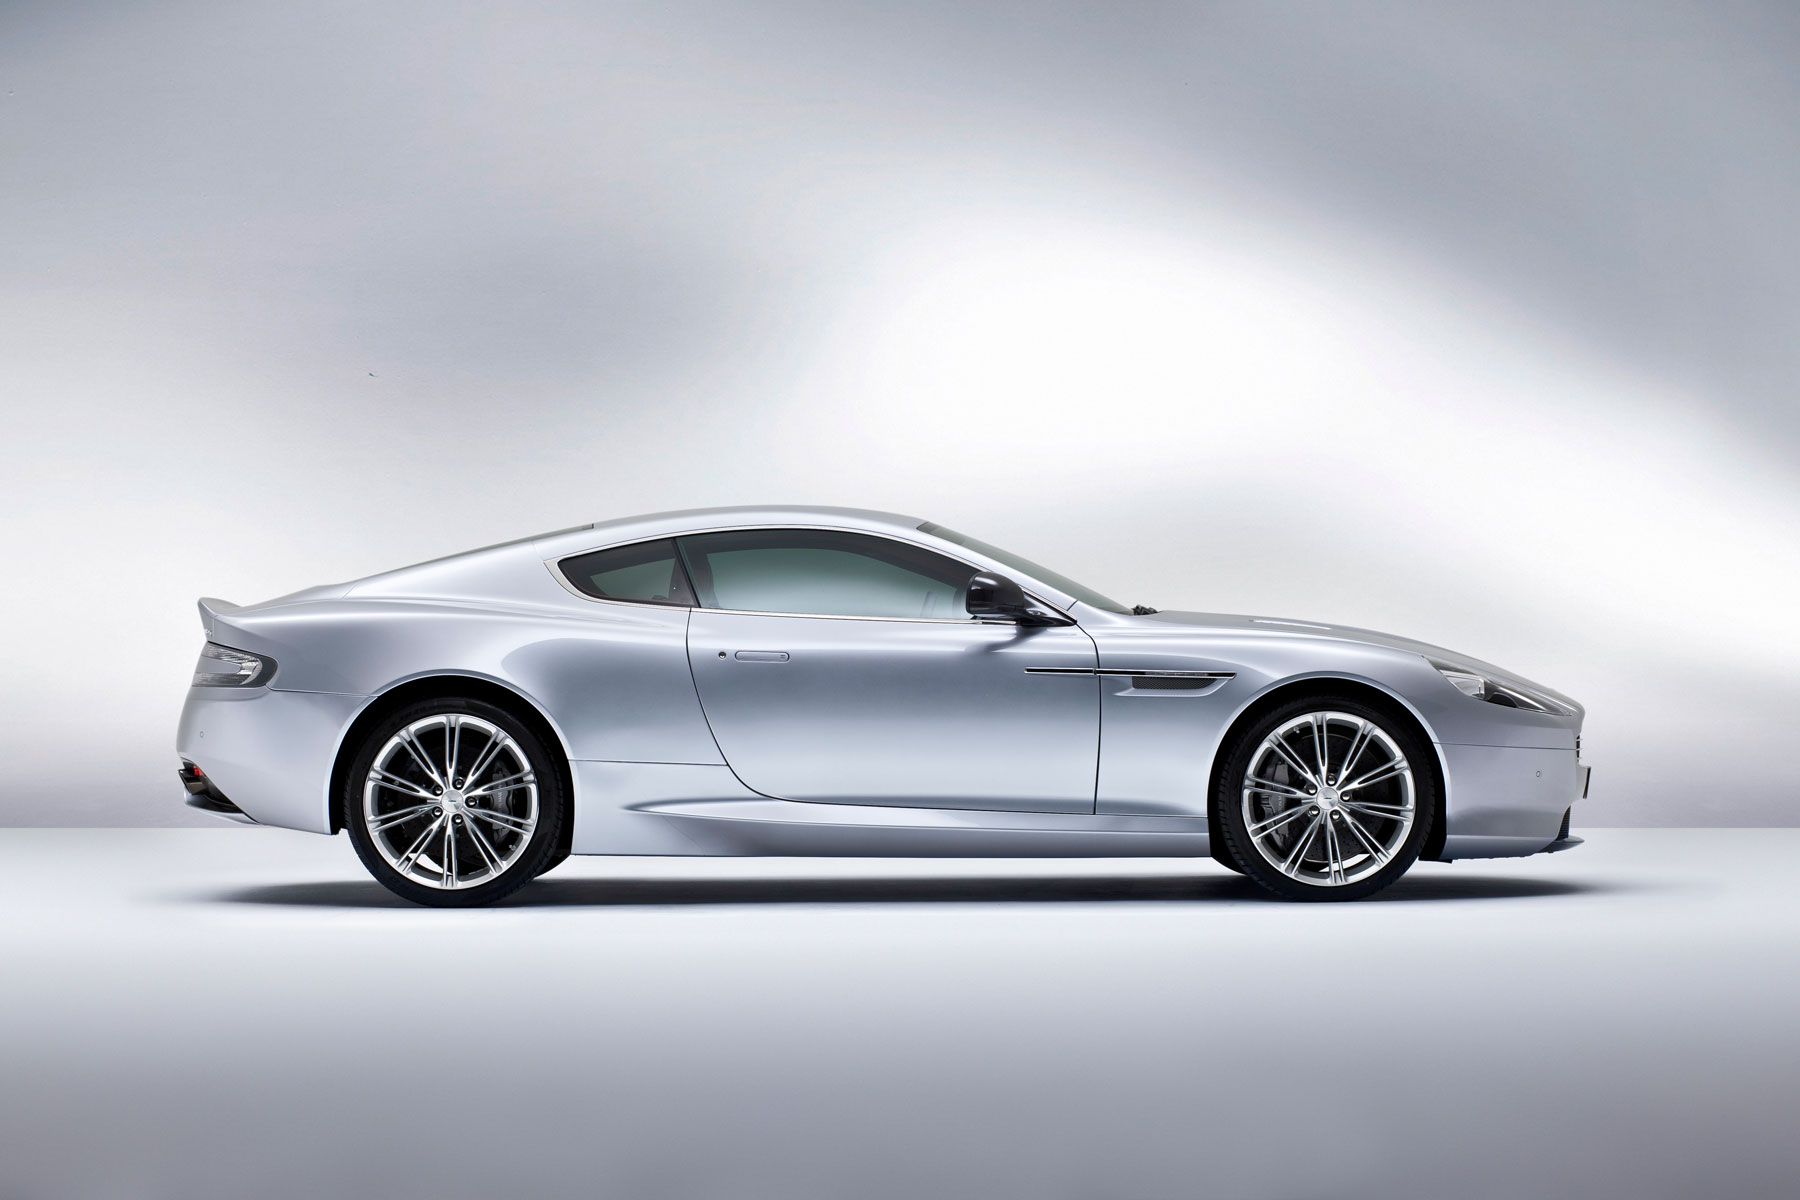 Auto Review: Aston Martin DB9 Volante